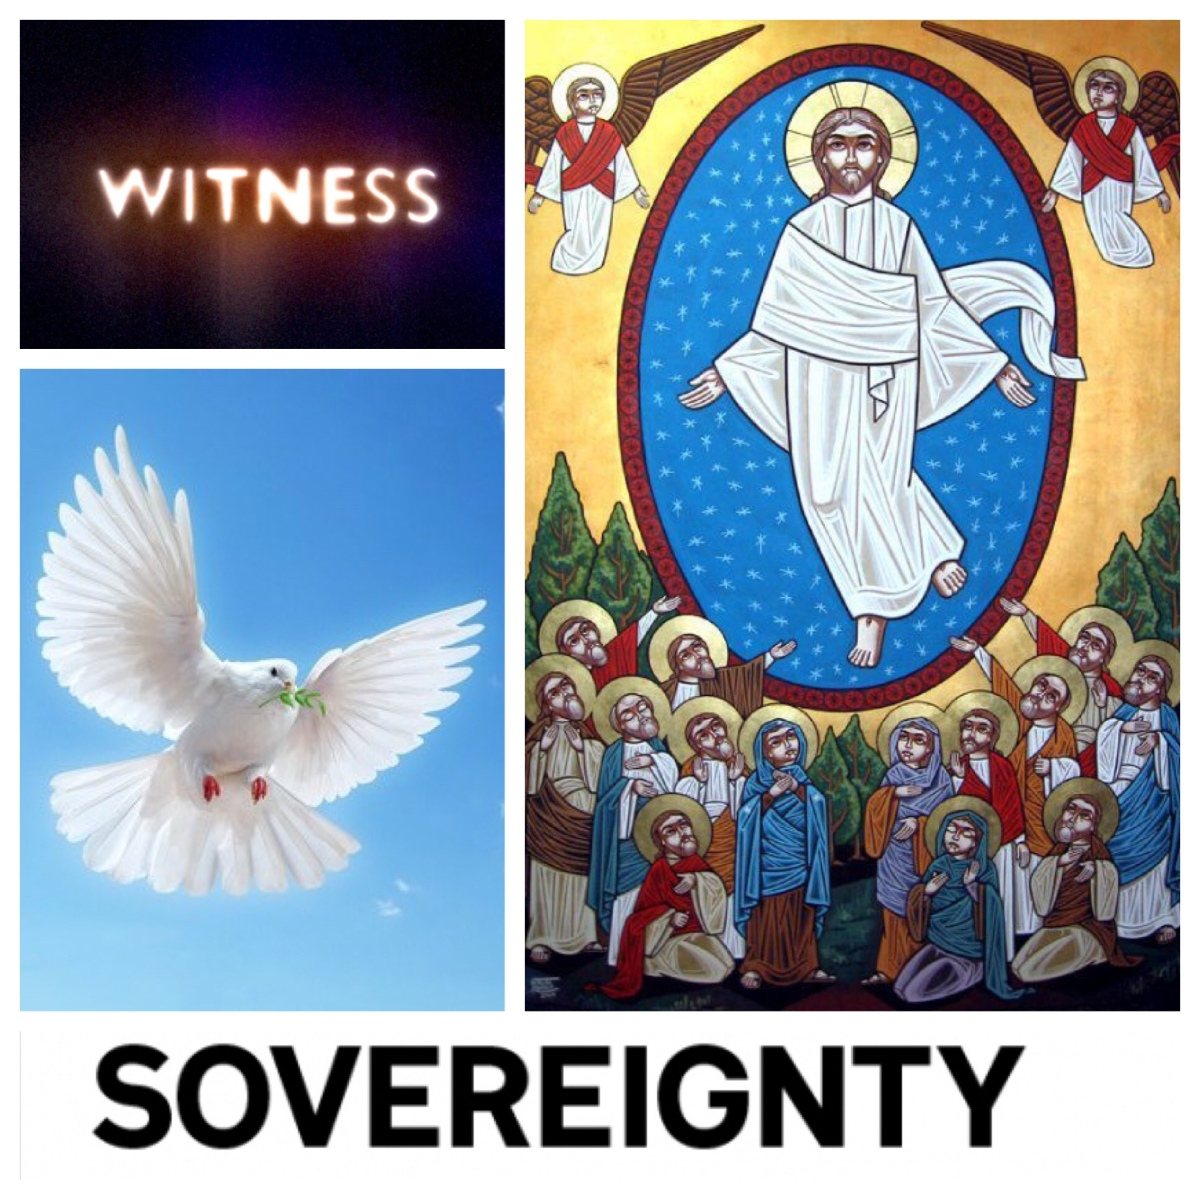 Is this the time? Sovereignty, Spirit, and witness (Acts1)